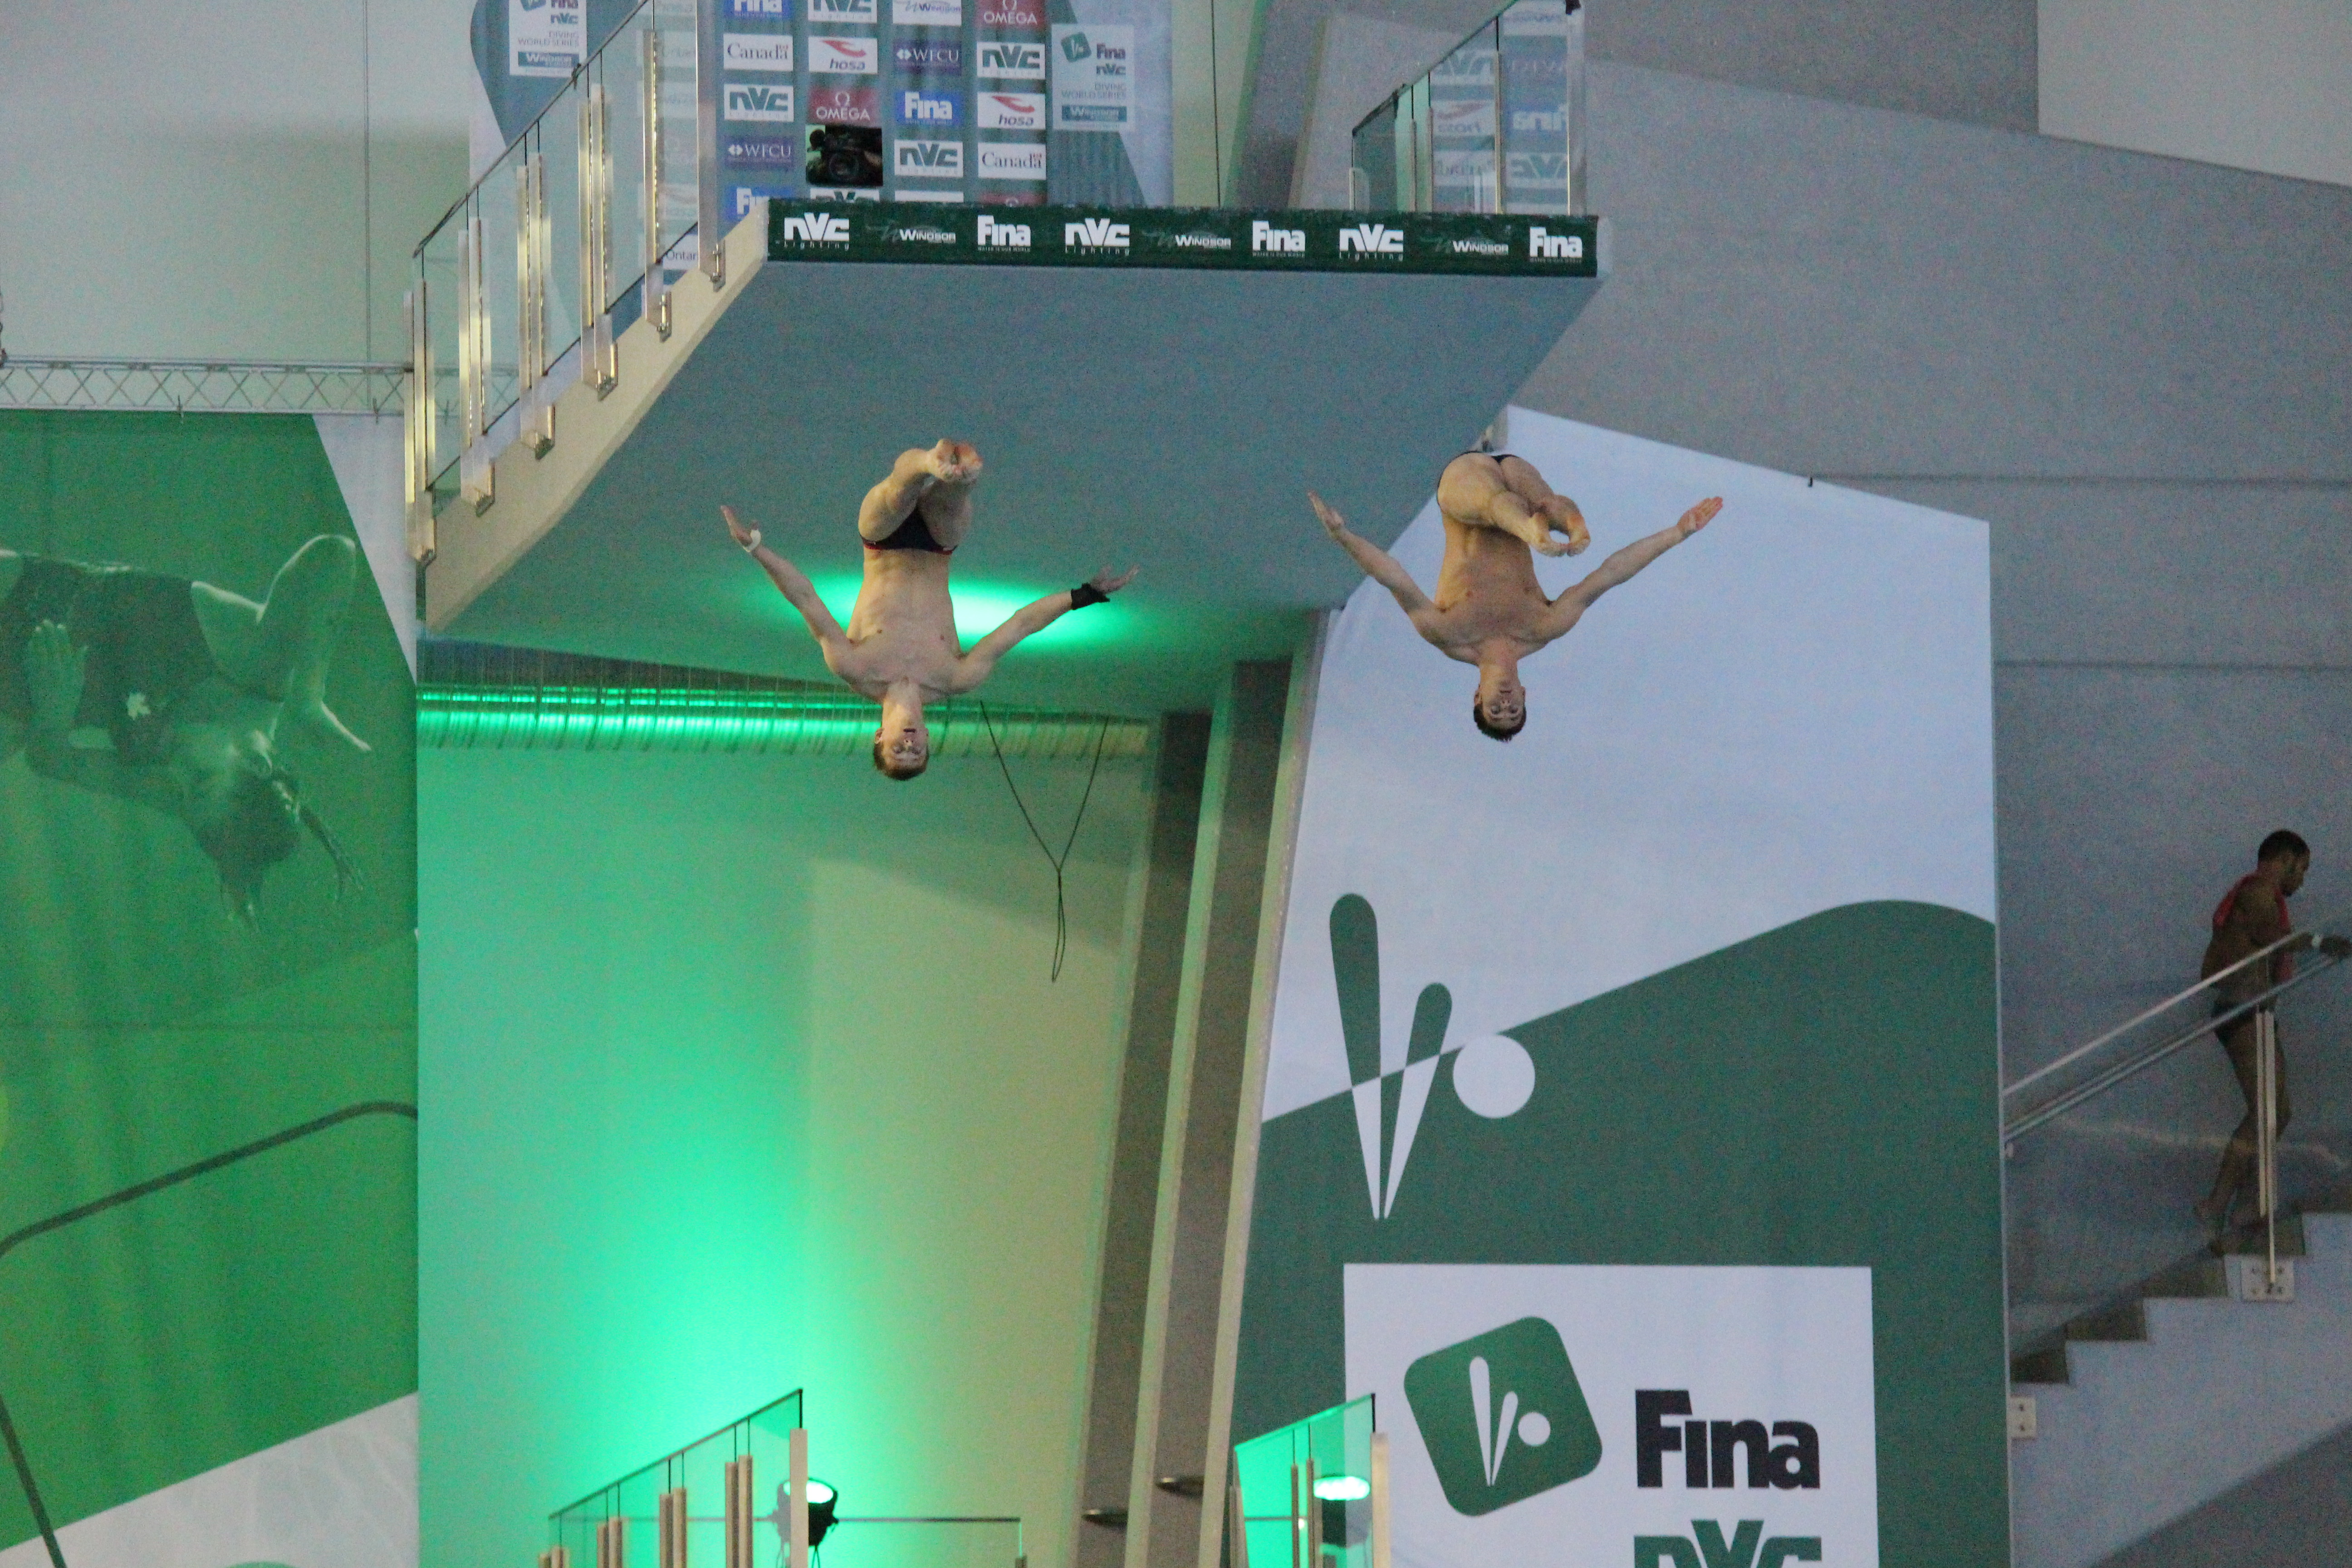 Divers compete in the FINA Diving World Series 2015 in Windsor, May 22, 2015. (Photo by Jason Viau)